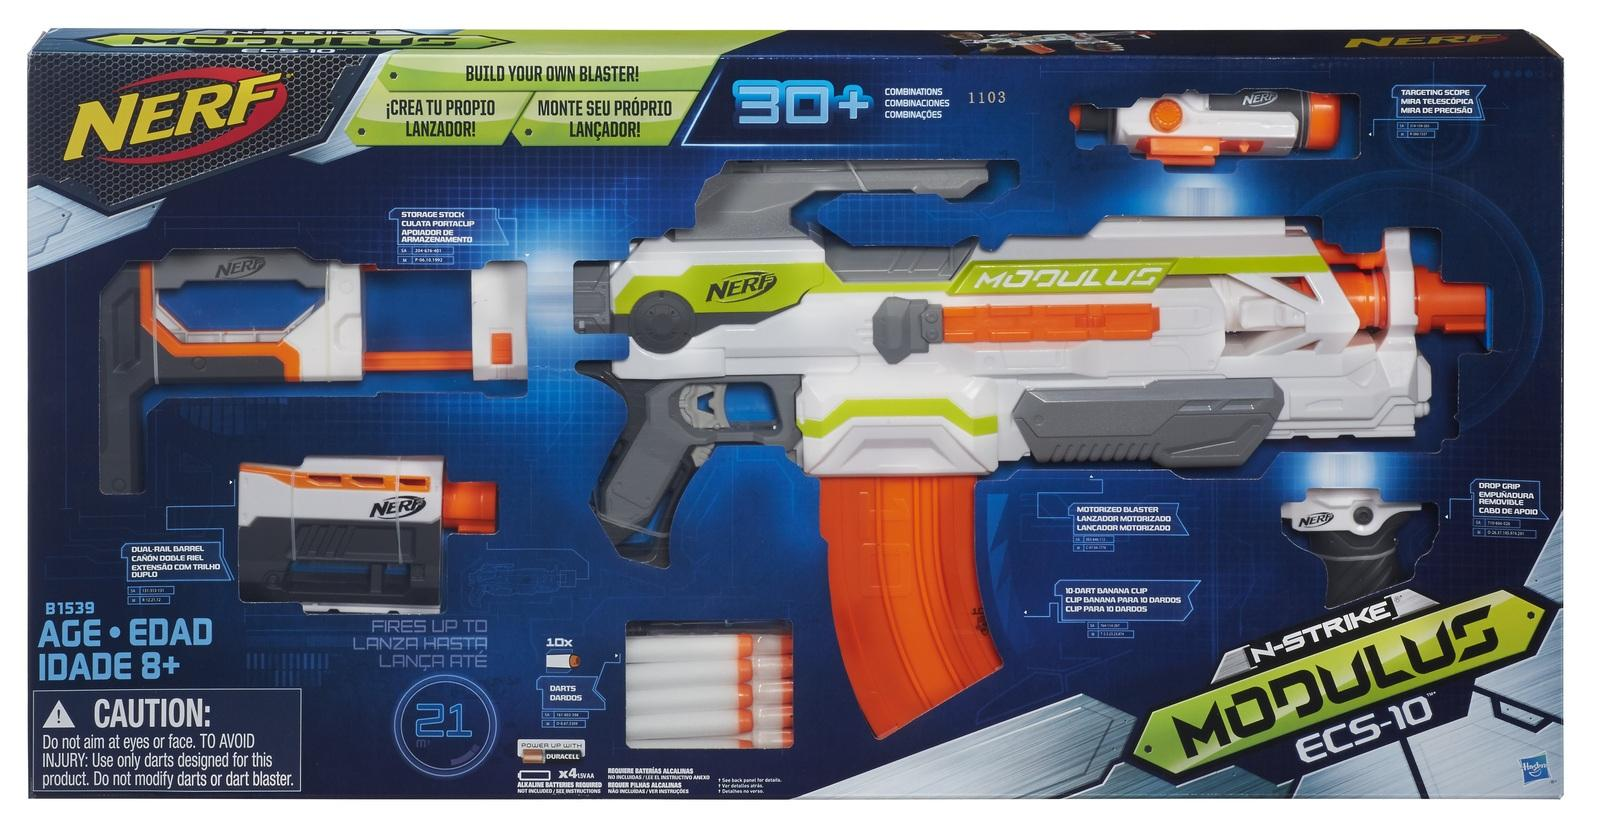 NERF Philippines: NERF price list - Gun & Bow Toy for sale | Lazada